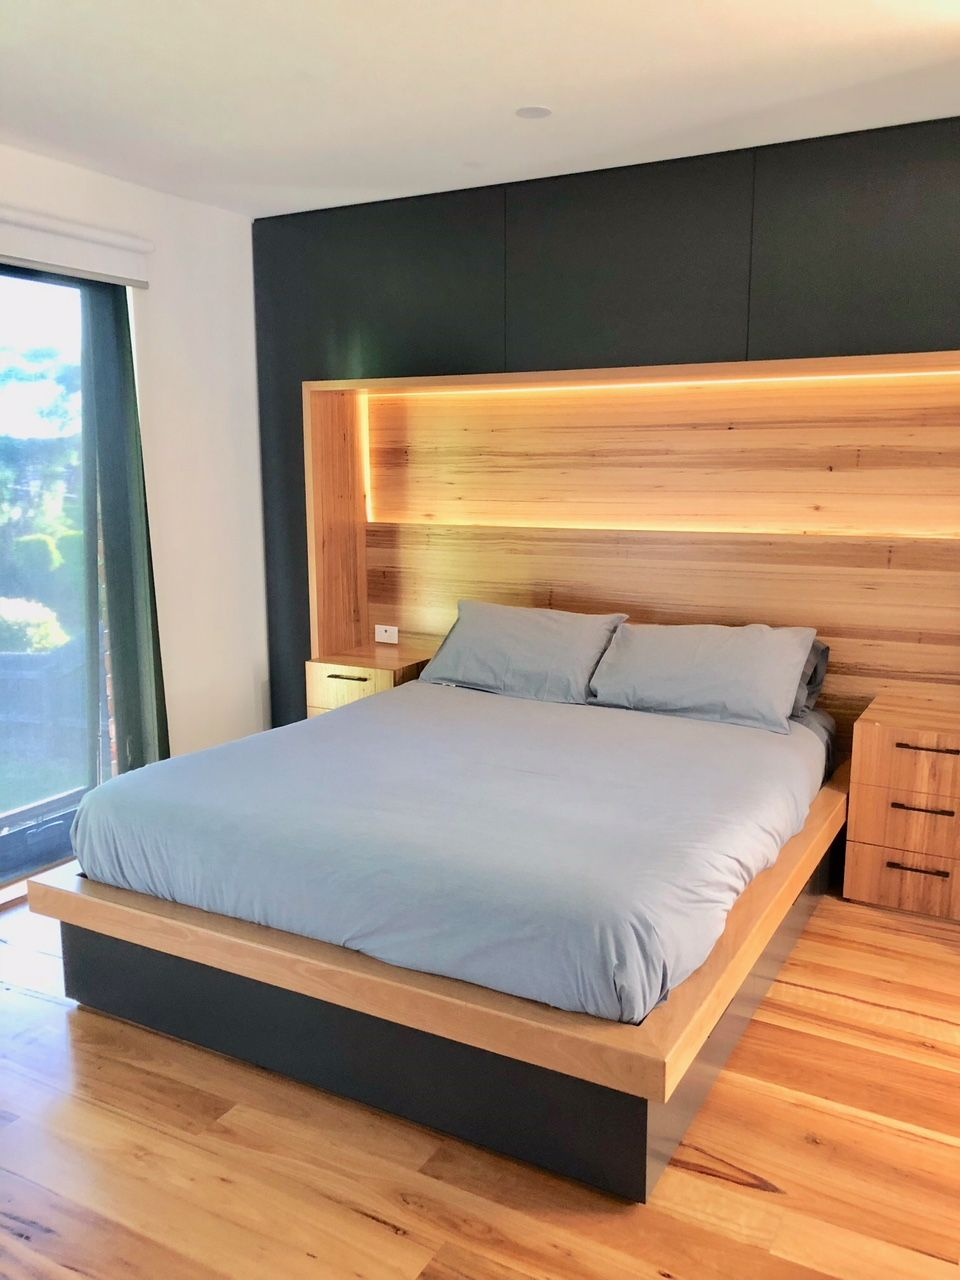 Best Custom Built Master Bedroom Design With Built In Timber 400 x 300